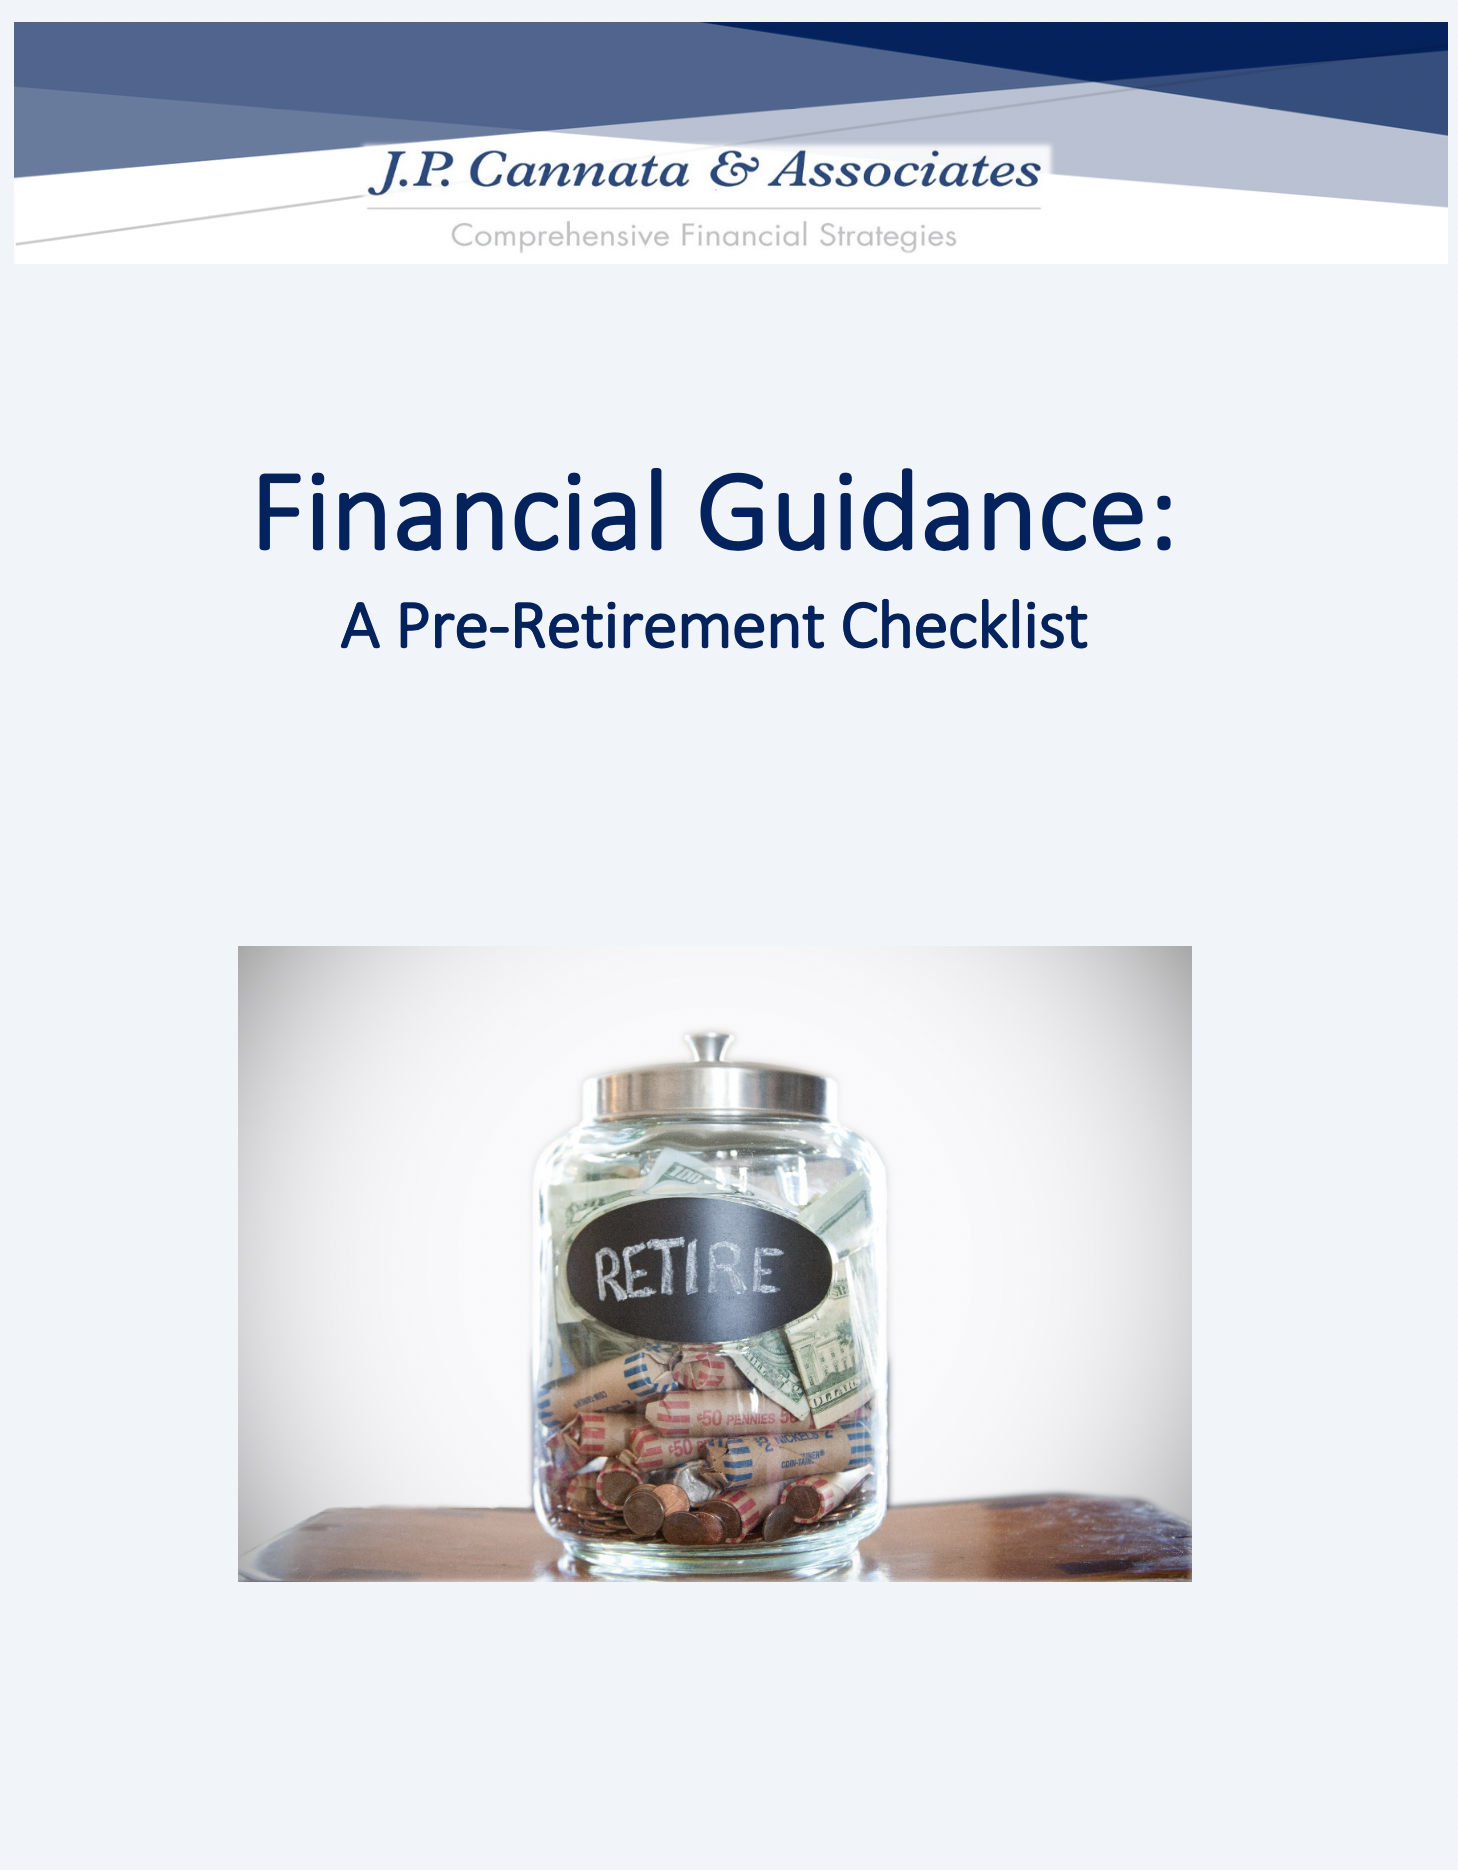 Financial Guidance - A Pre-Retirement Checklist